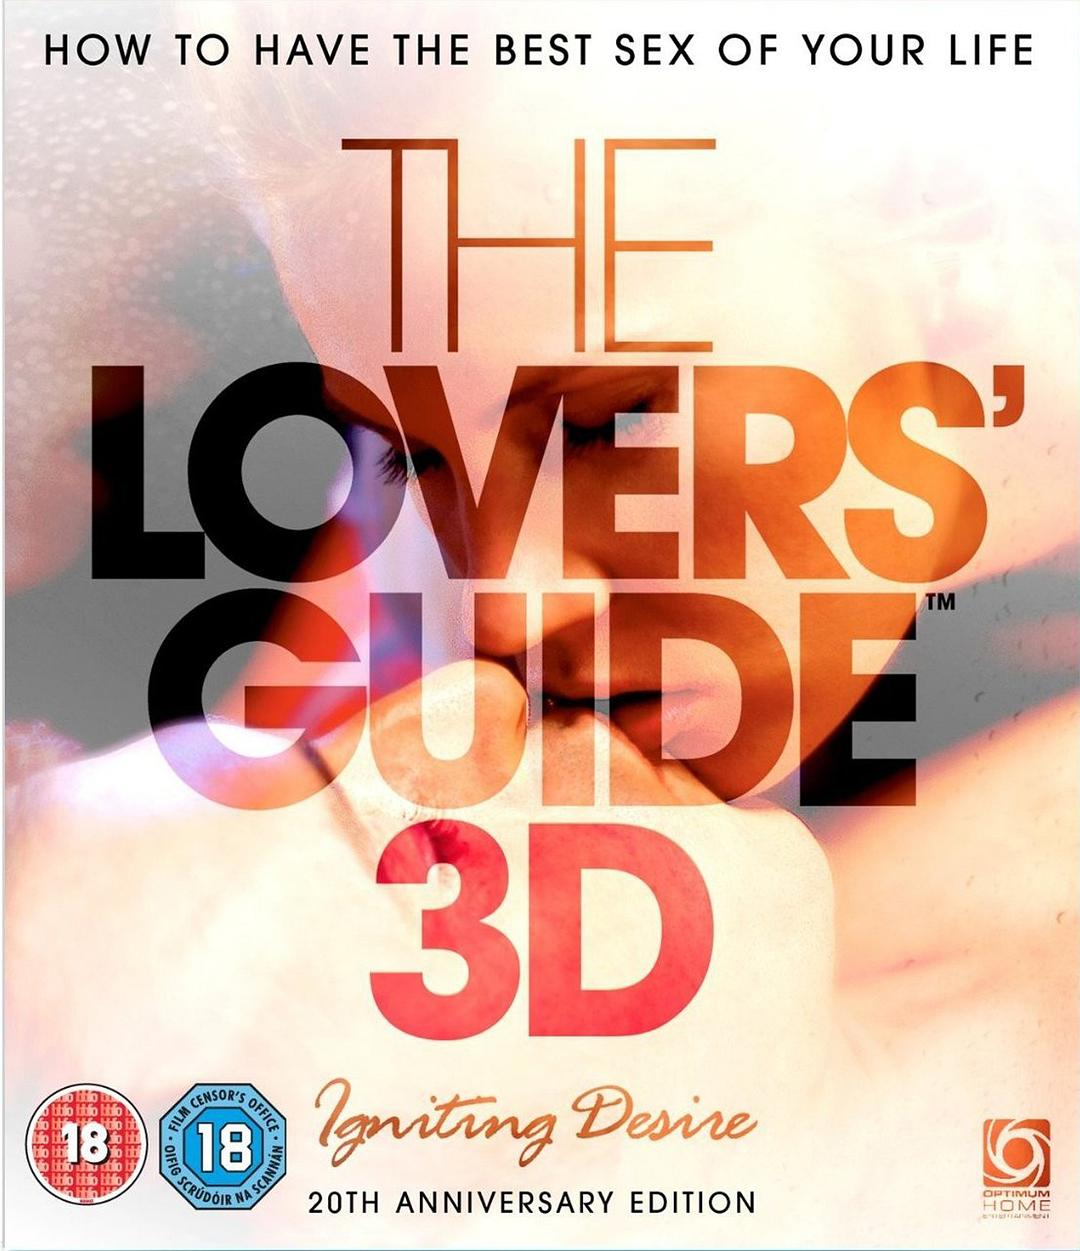 情侣性爱指南 The Lovers' Guide: Sex Positions (2002)